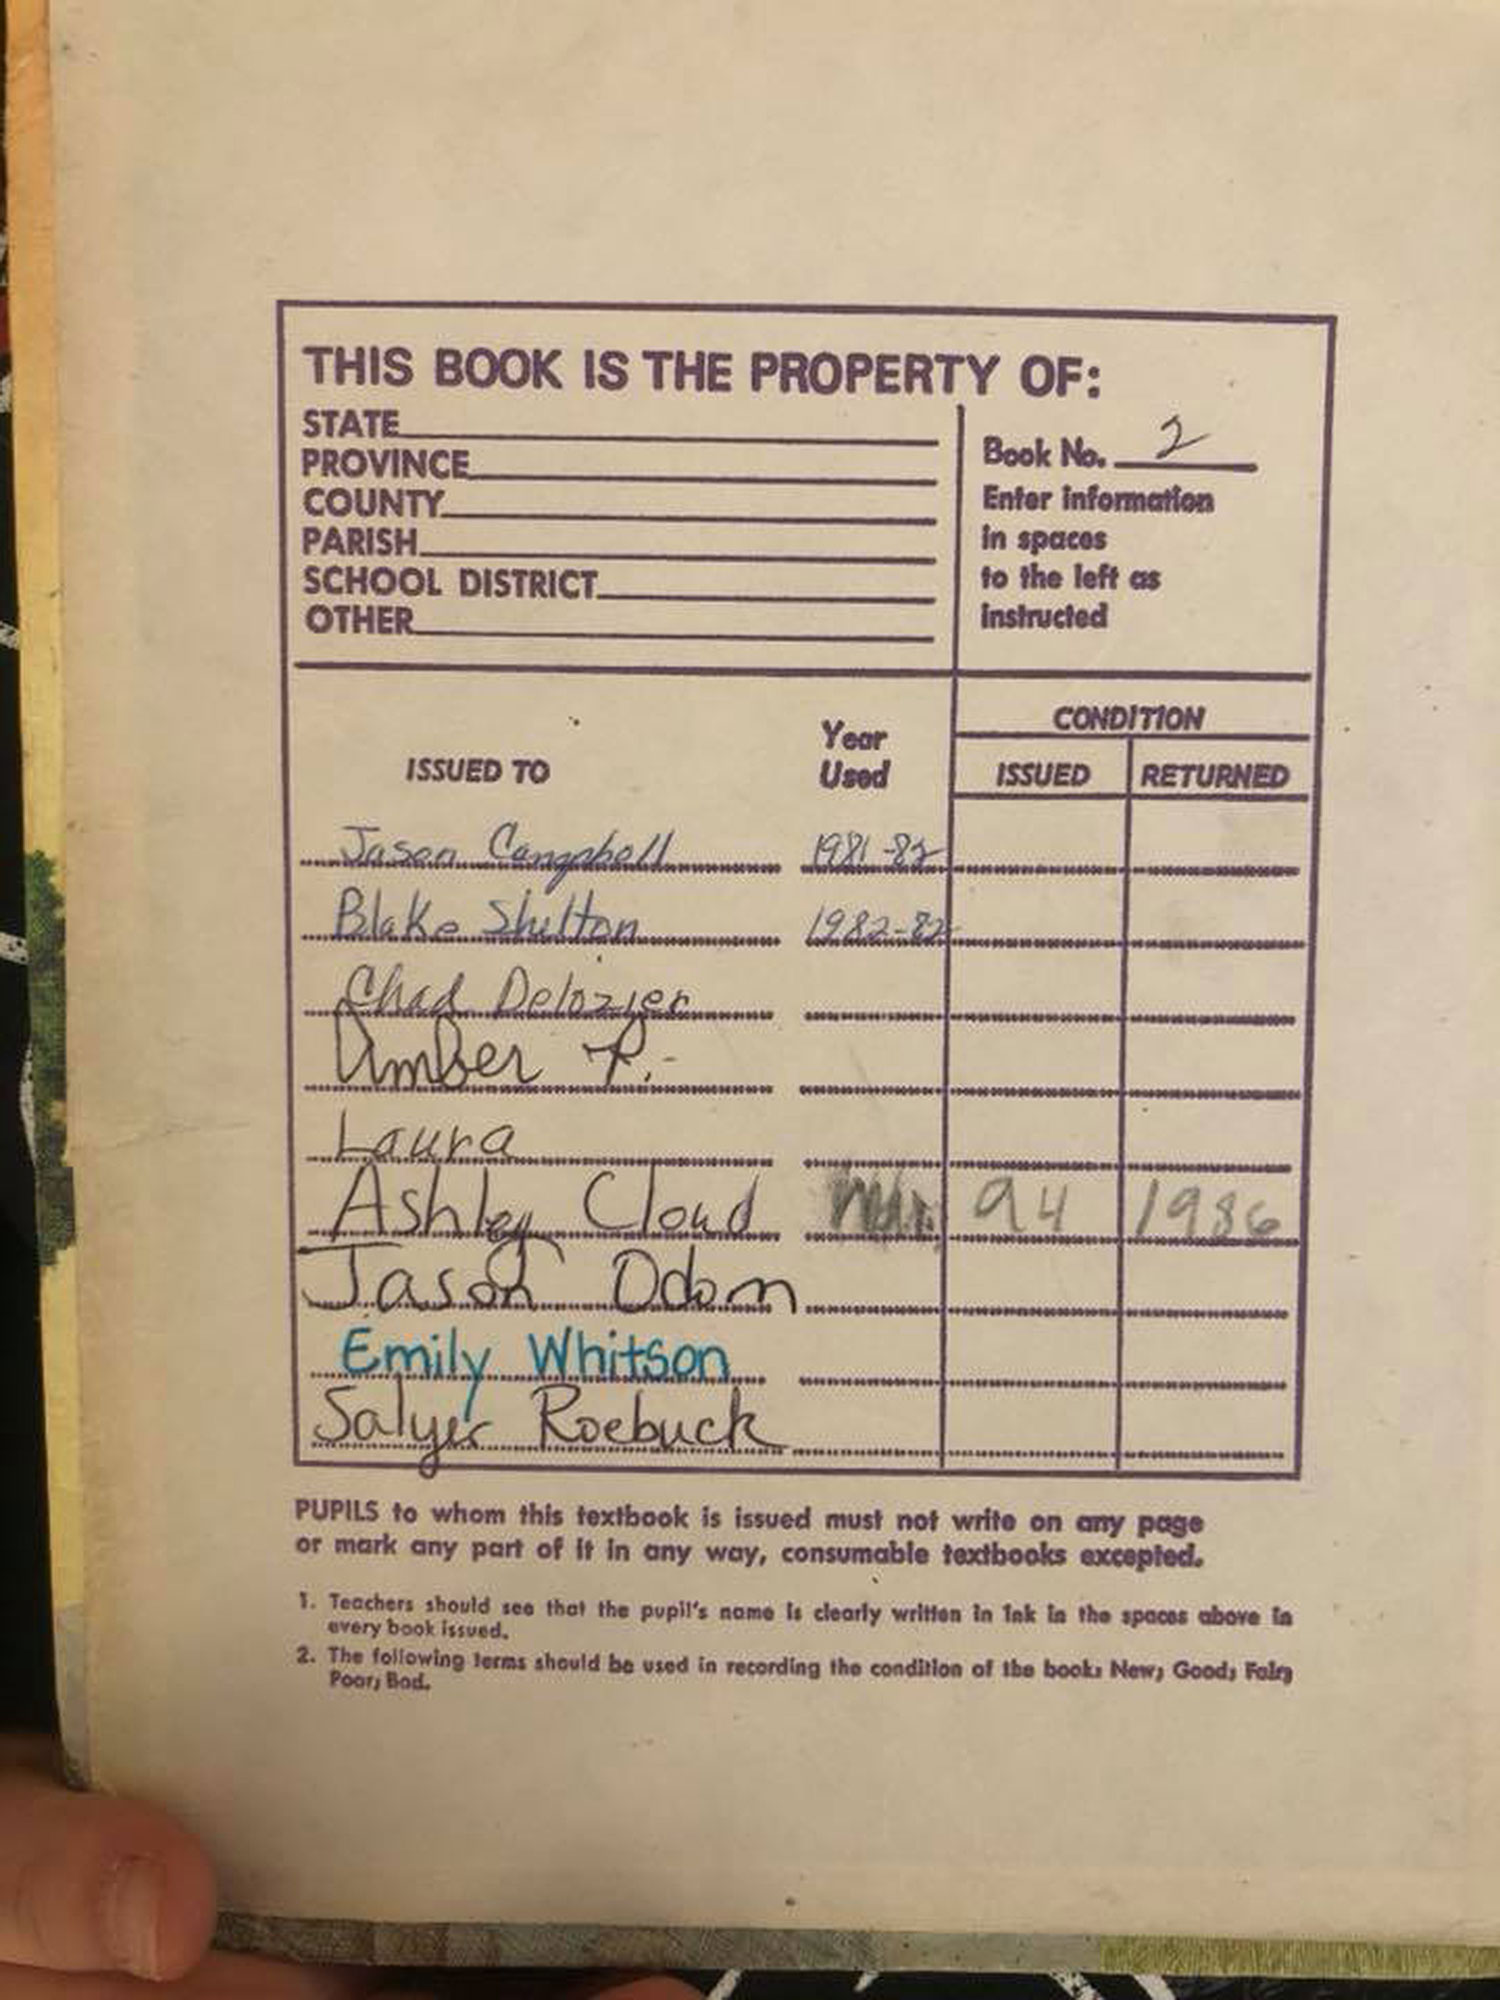 Oklahoma Mom 'Embarrassed' After Her Daughter Checks Out Textbook Once Used By Blake Shelton blake-shelton-book-2